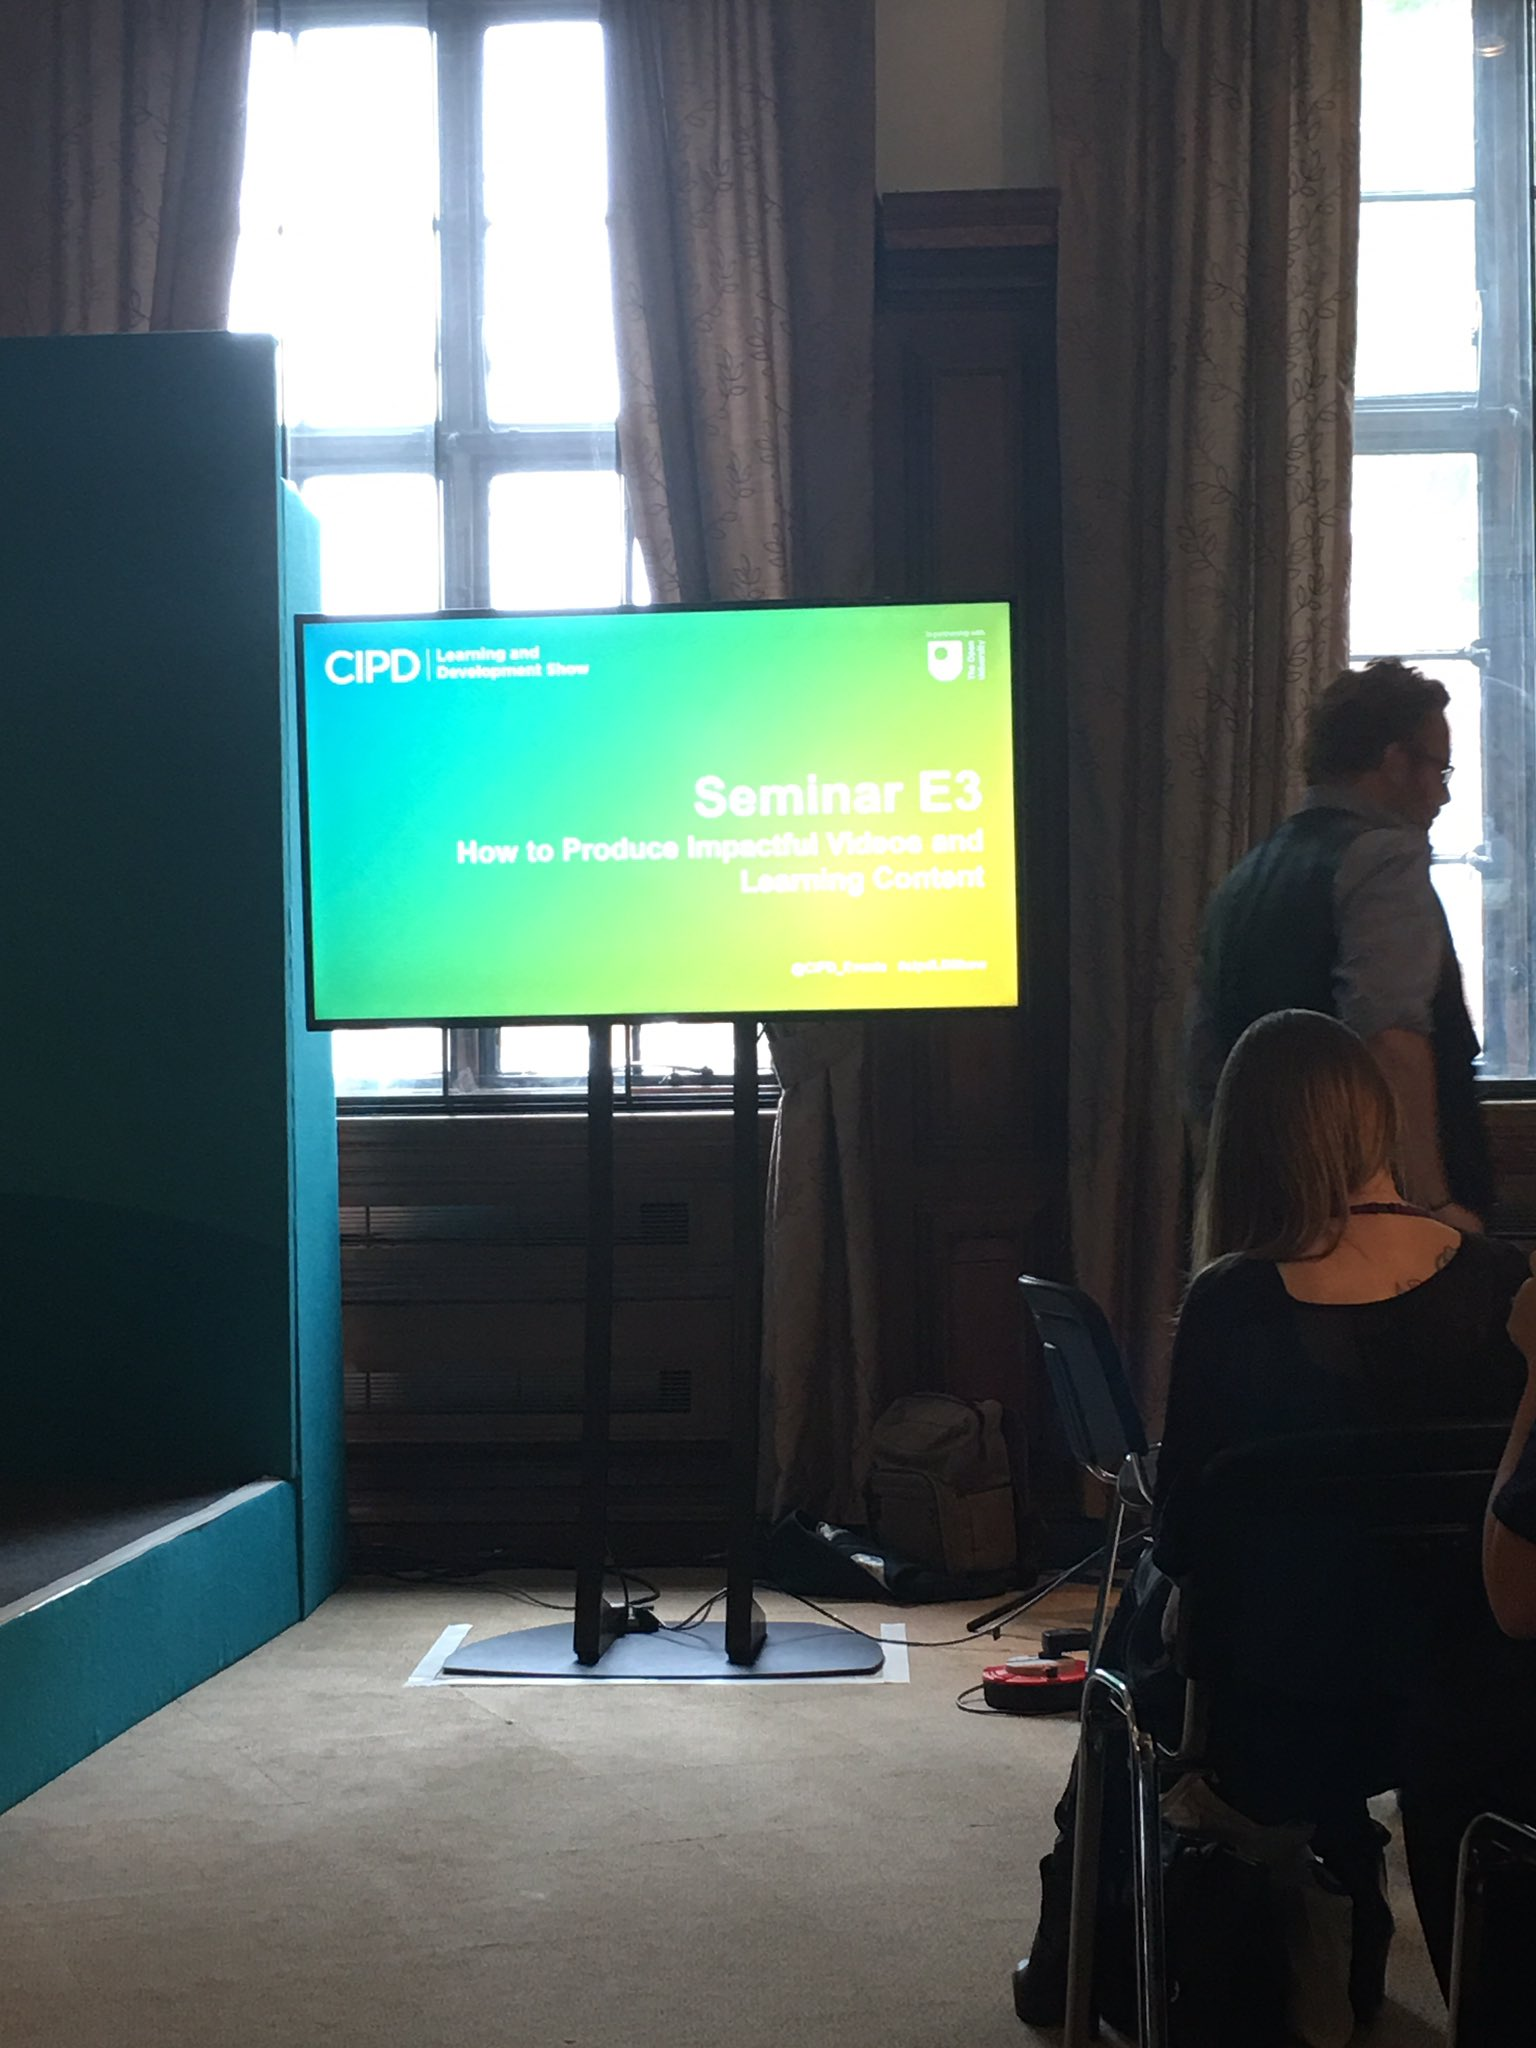 Prev stats to quash that #videos can't play a part in #learning ecosystem. @SeeLearning now on hand with a practical guide #cipdldshow #E3 https://t.co/6iryCwhpkw